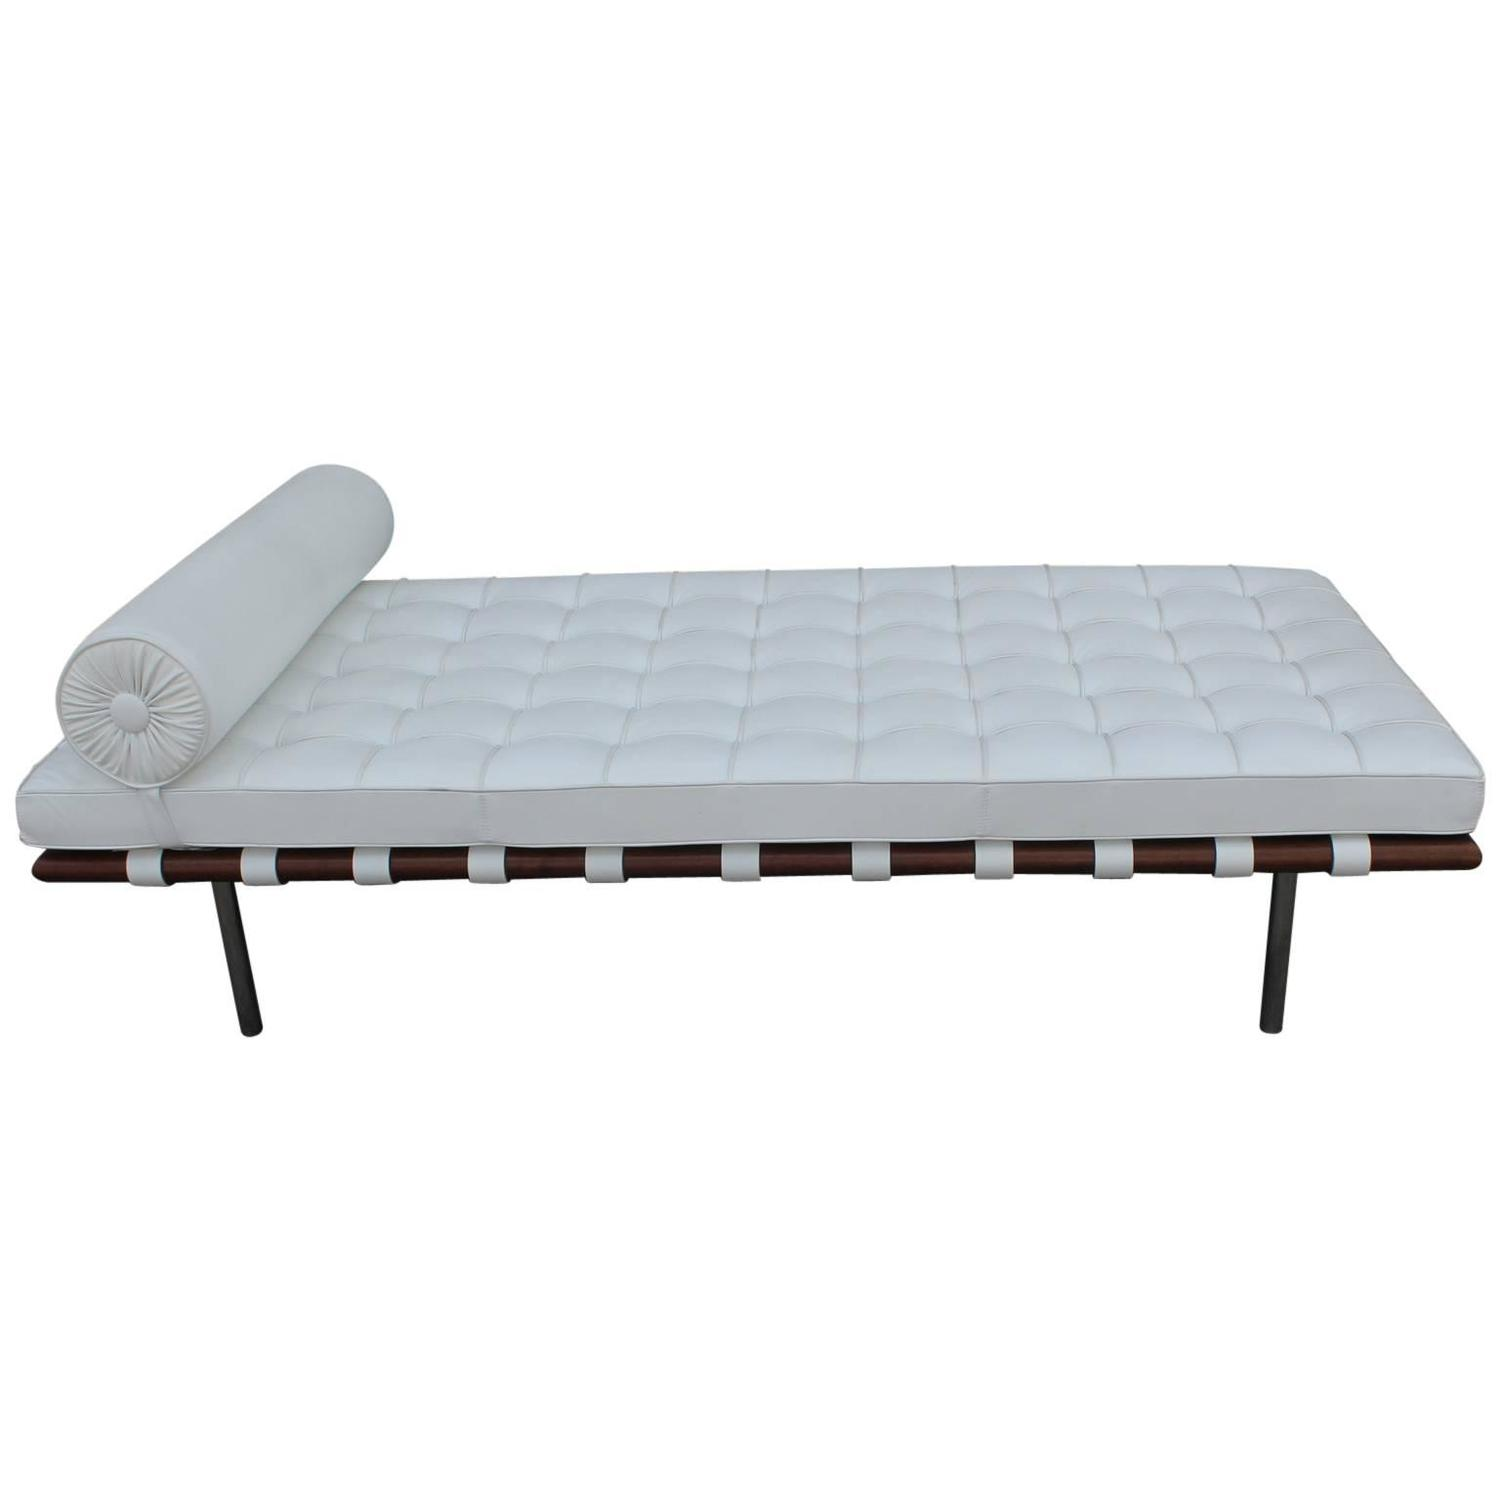 Barcelona Daybed by Mies van der Rohe in White Leather at 1stdibs